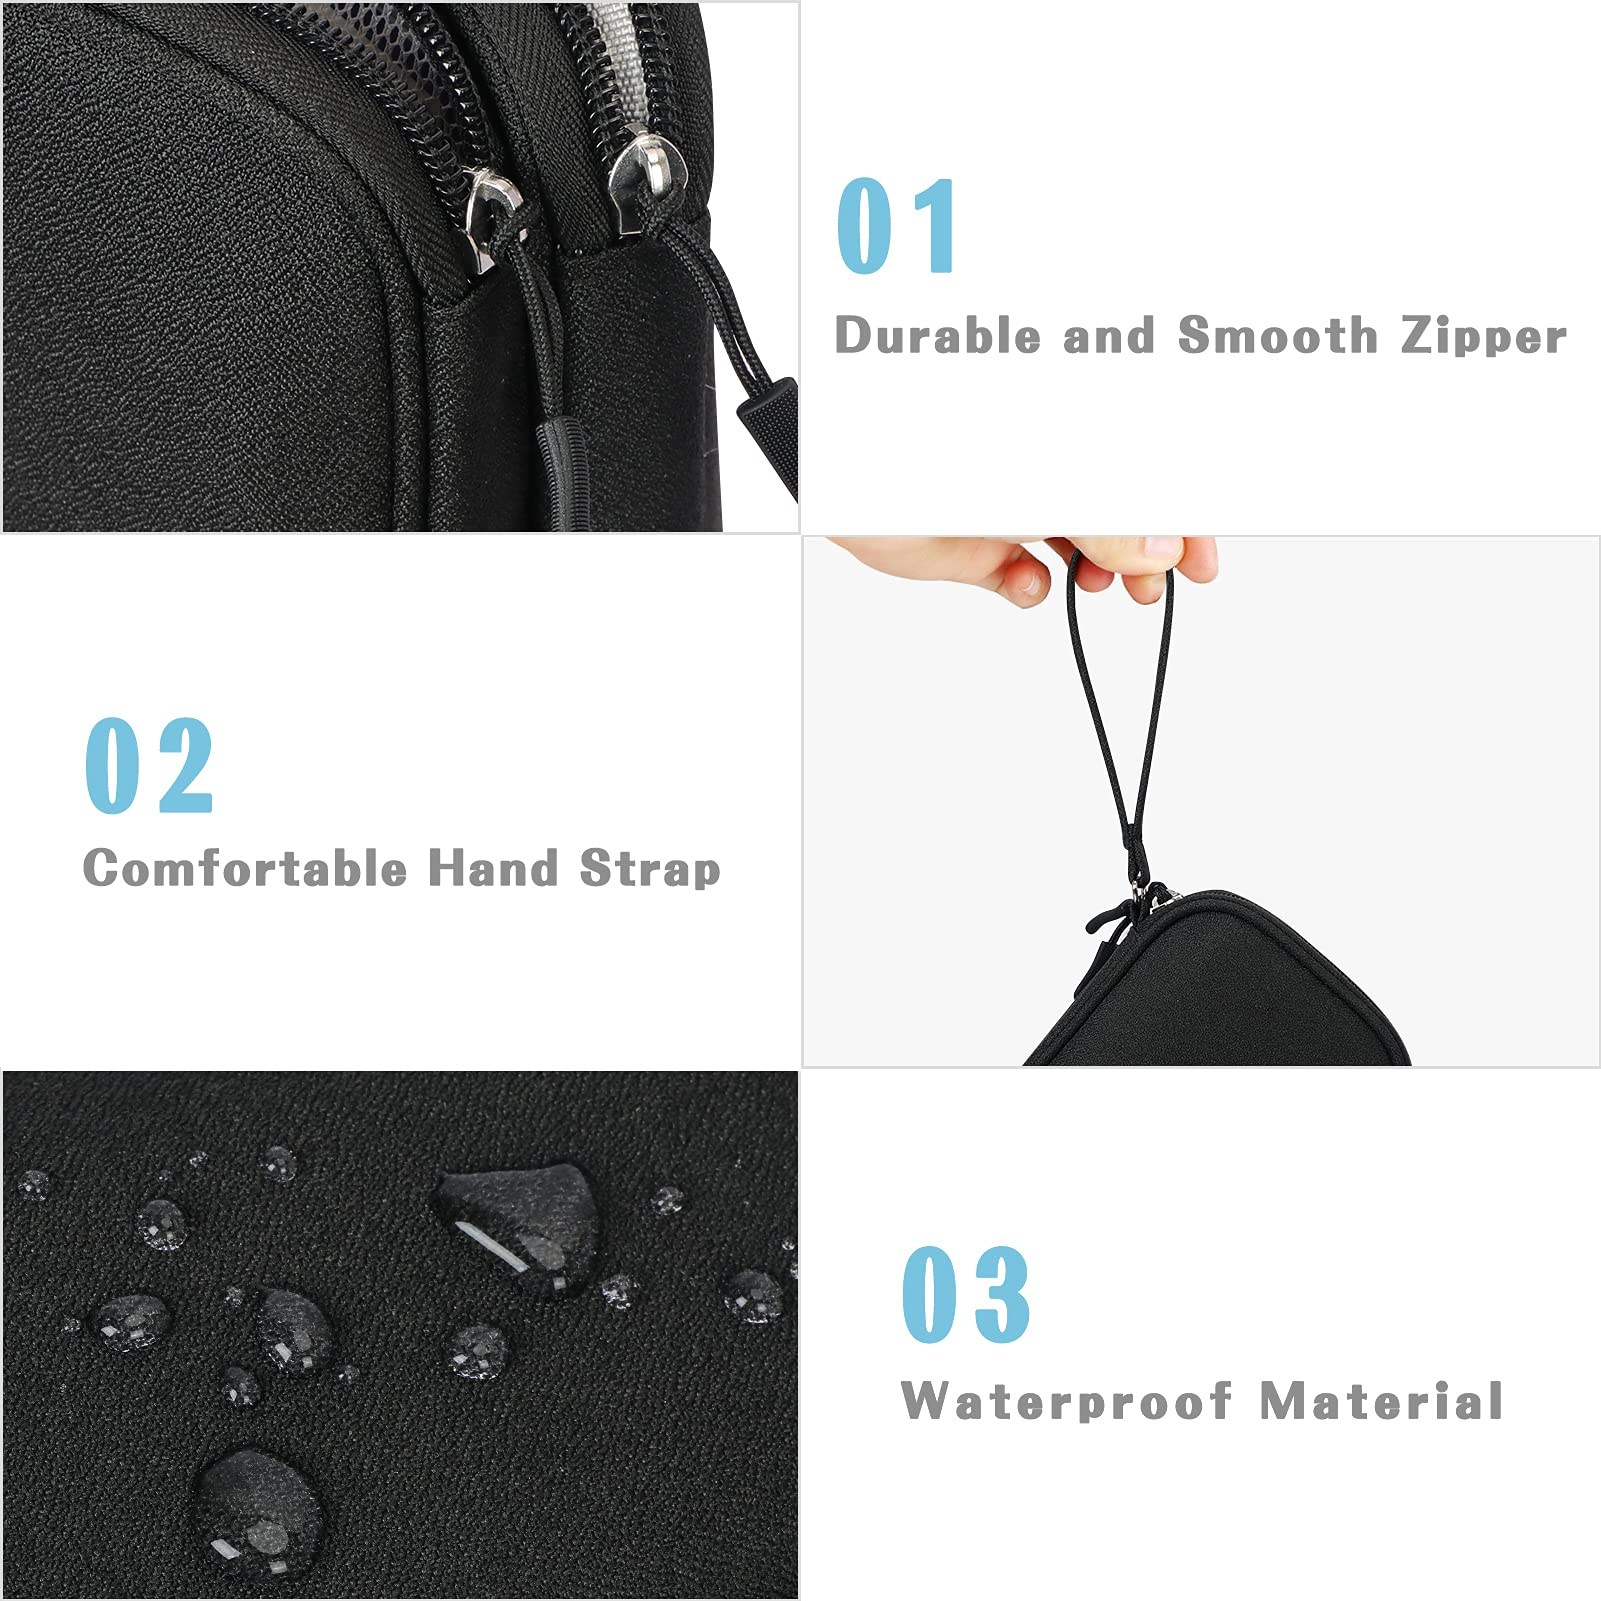 FYY Electronic Organizer, Travel Cable Organizer Bag Pouch Electronic Accessories Carry Case Portable Waterproof Double Layers All-in-One Storage Bag for Cable, Cord, Charger, Phone, Earphone Black